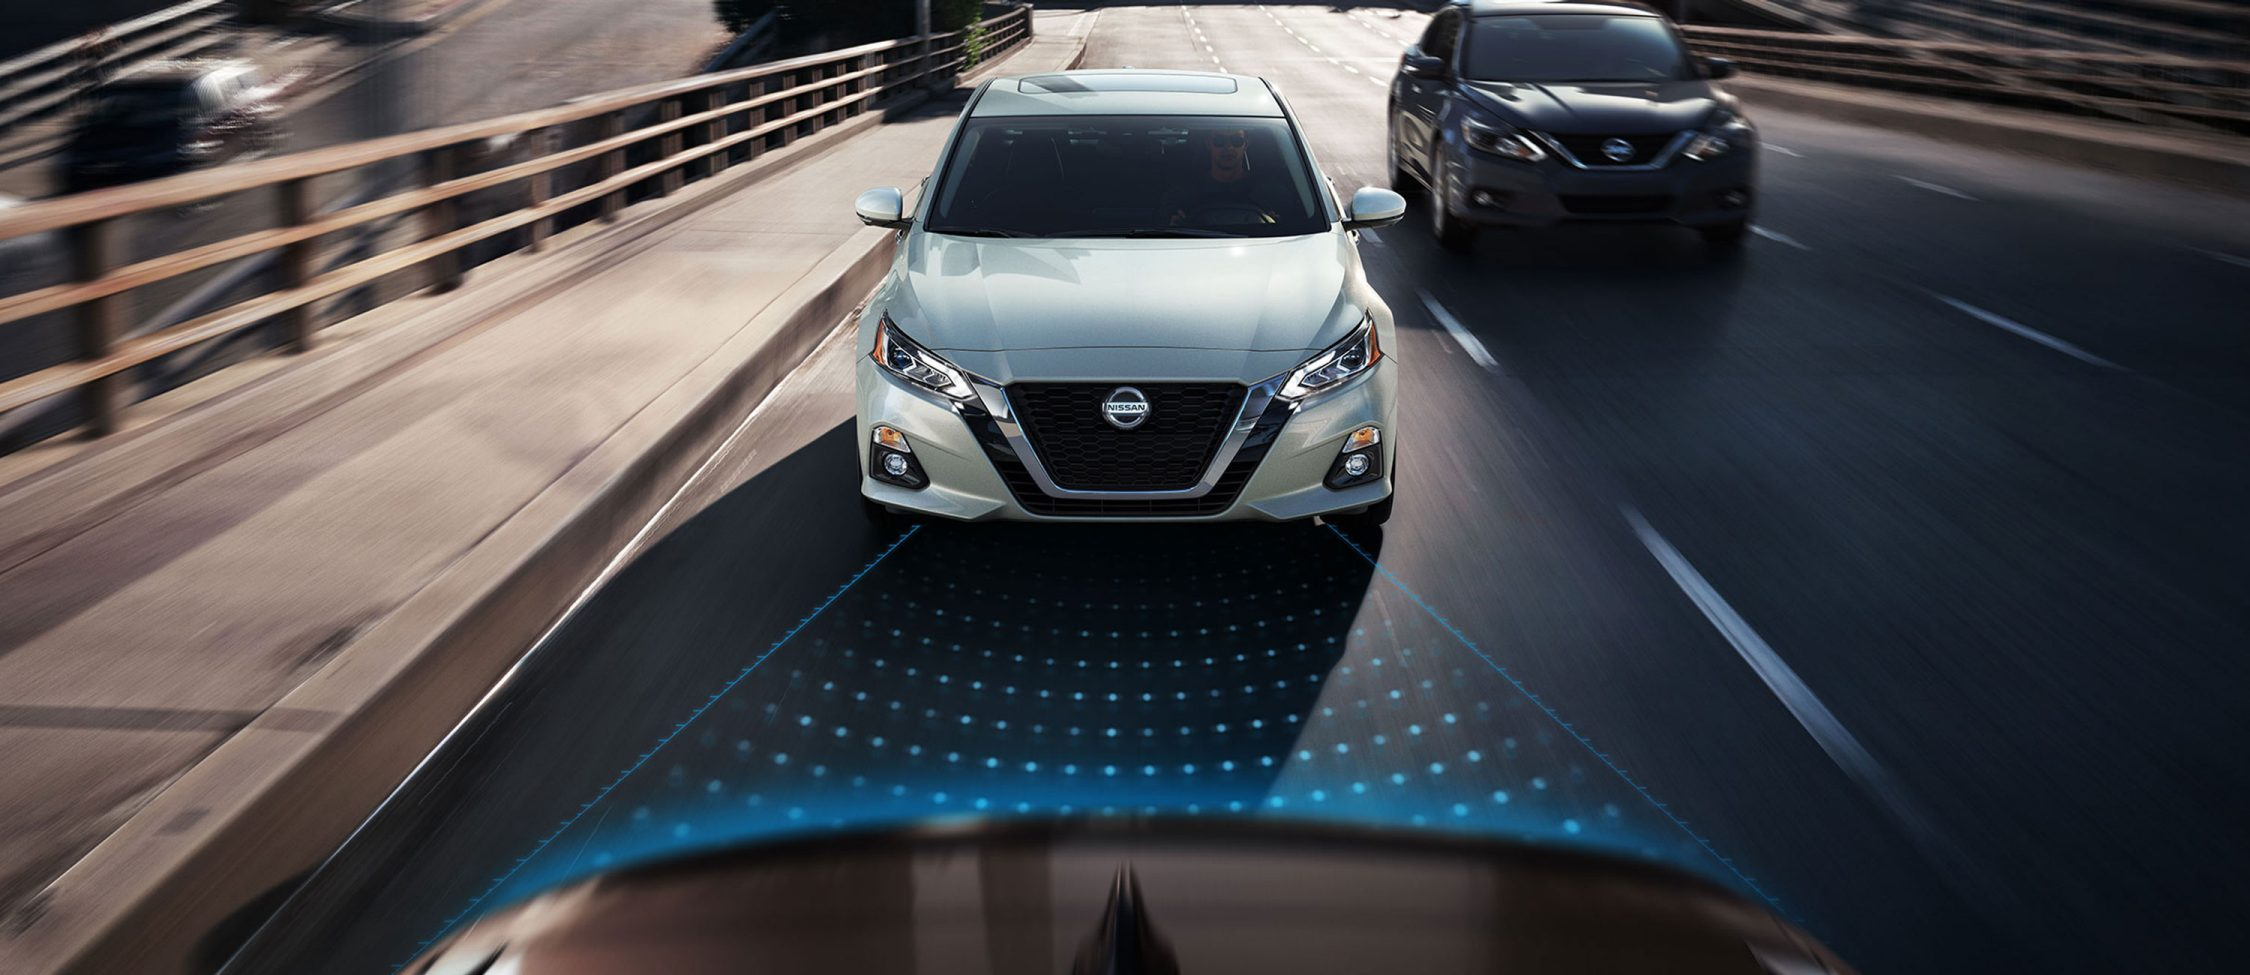 Nissan continues to innovate with the introduction of latest NIM technologies in the Middle East